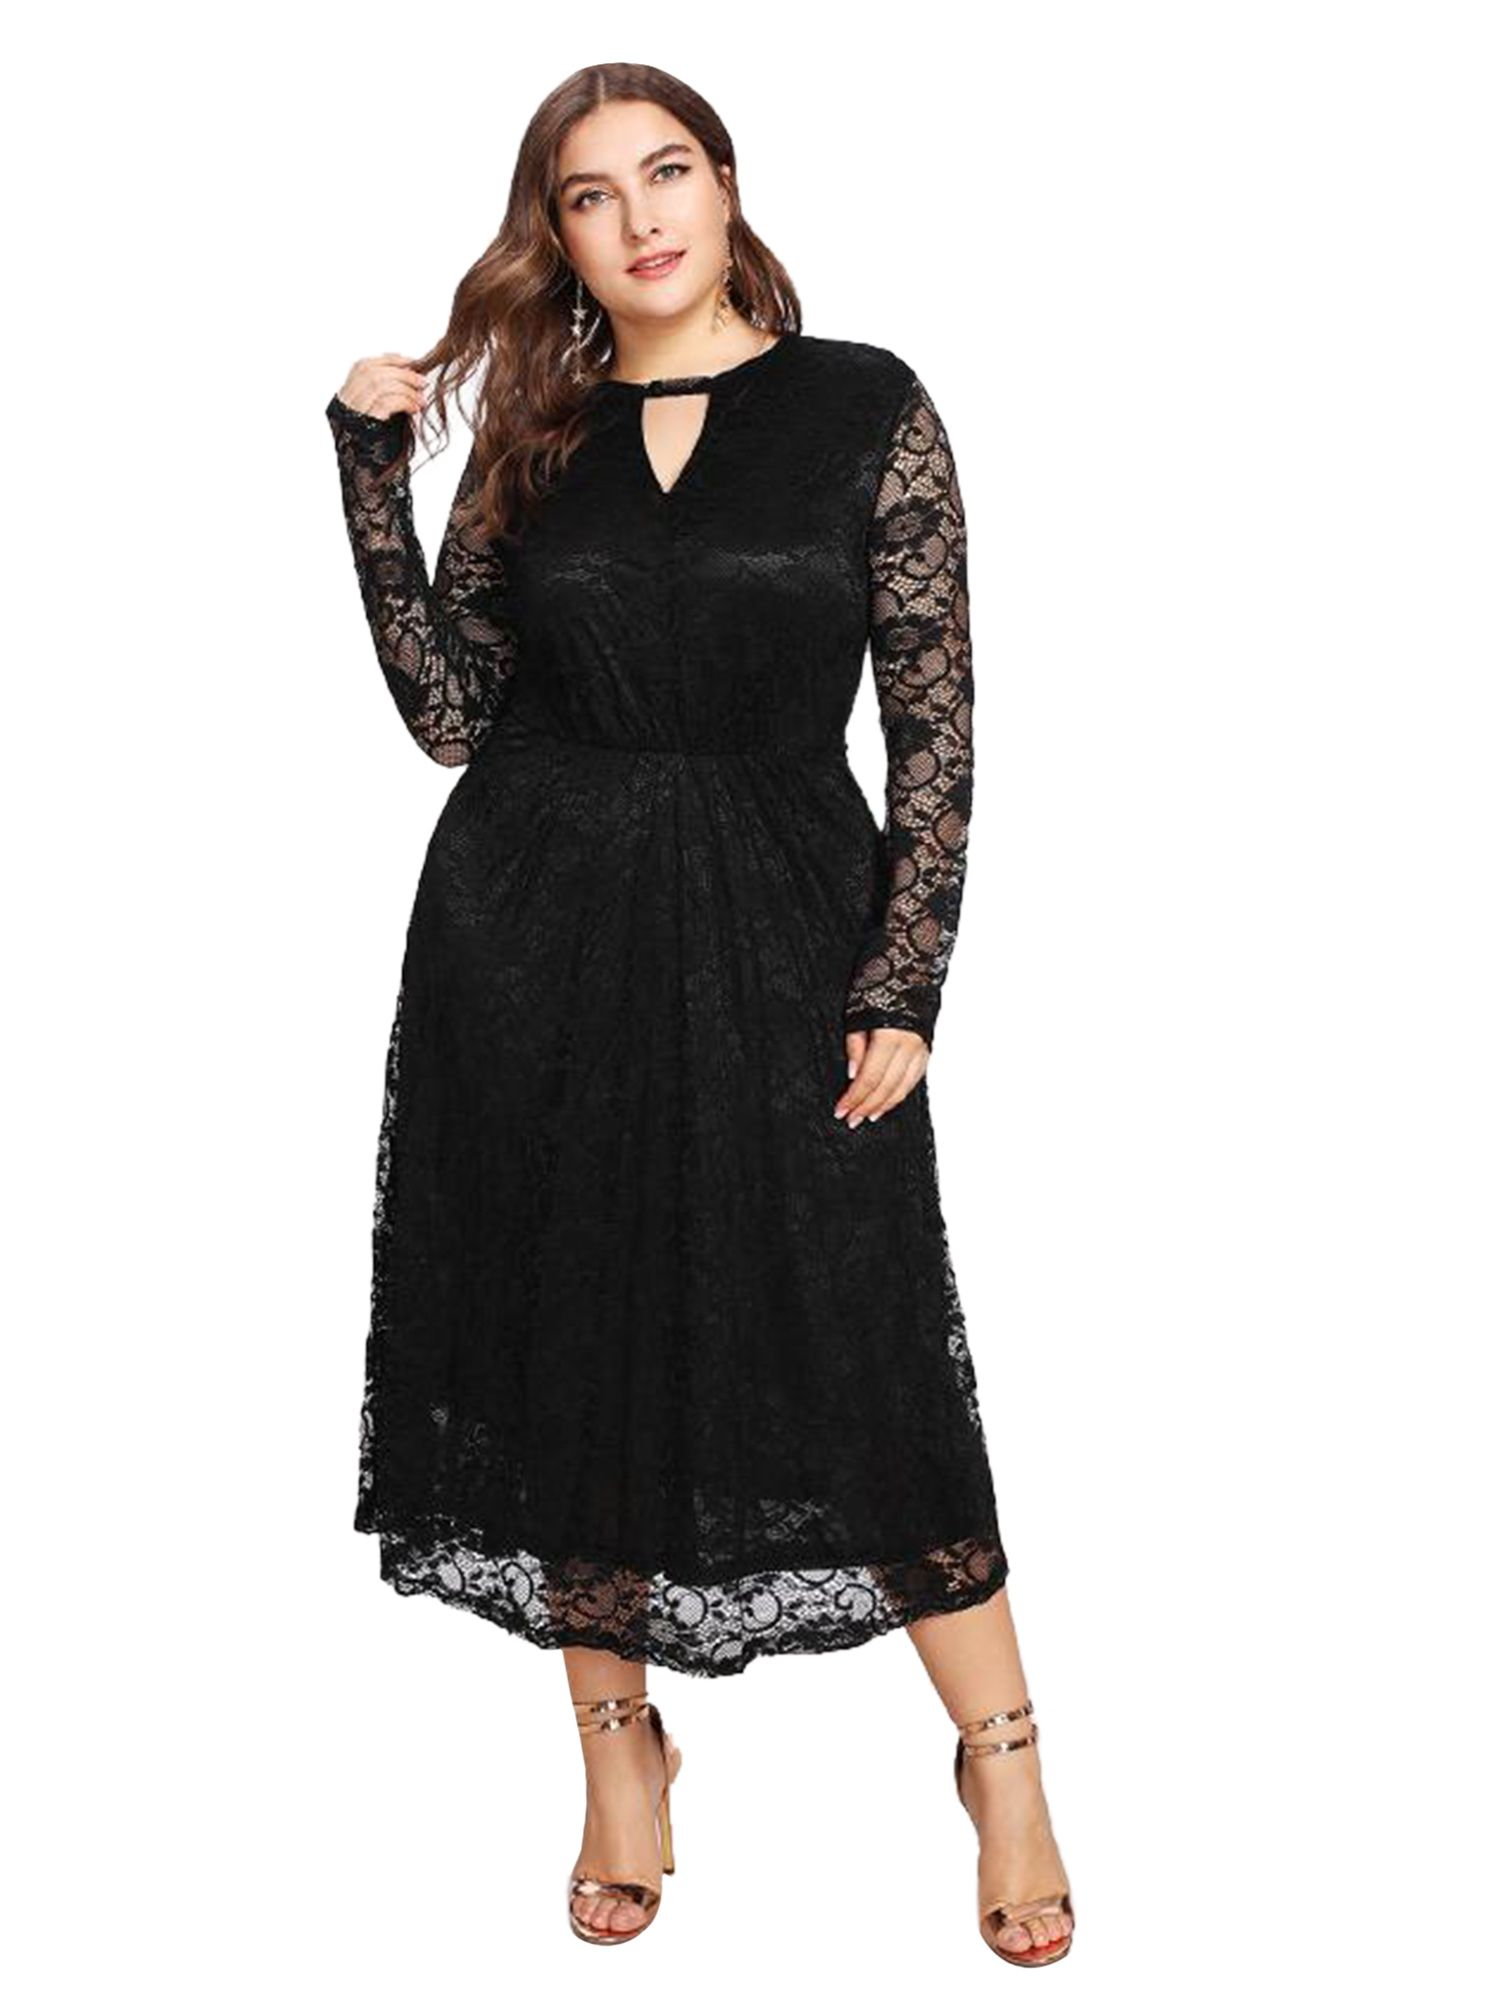 fc634c0c7dc1 ESPRLIA Women s Plus Size Lace Bridal Formal Skater Cocktail Dress ...